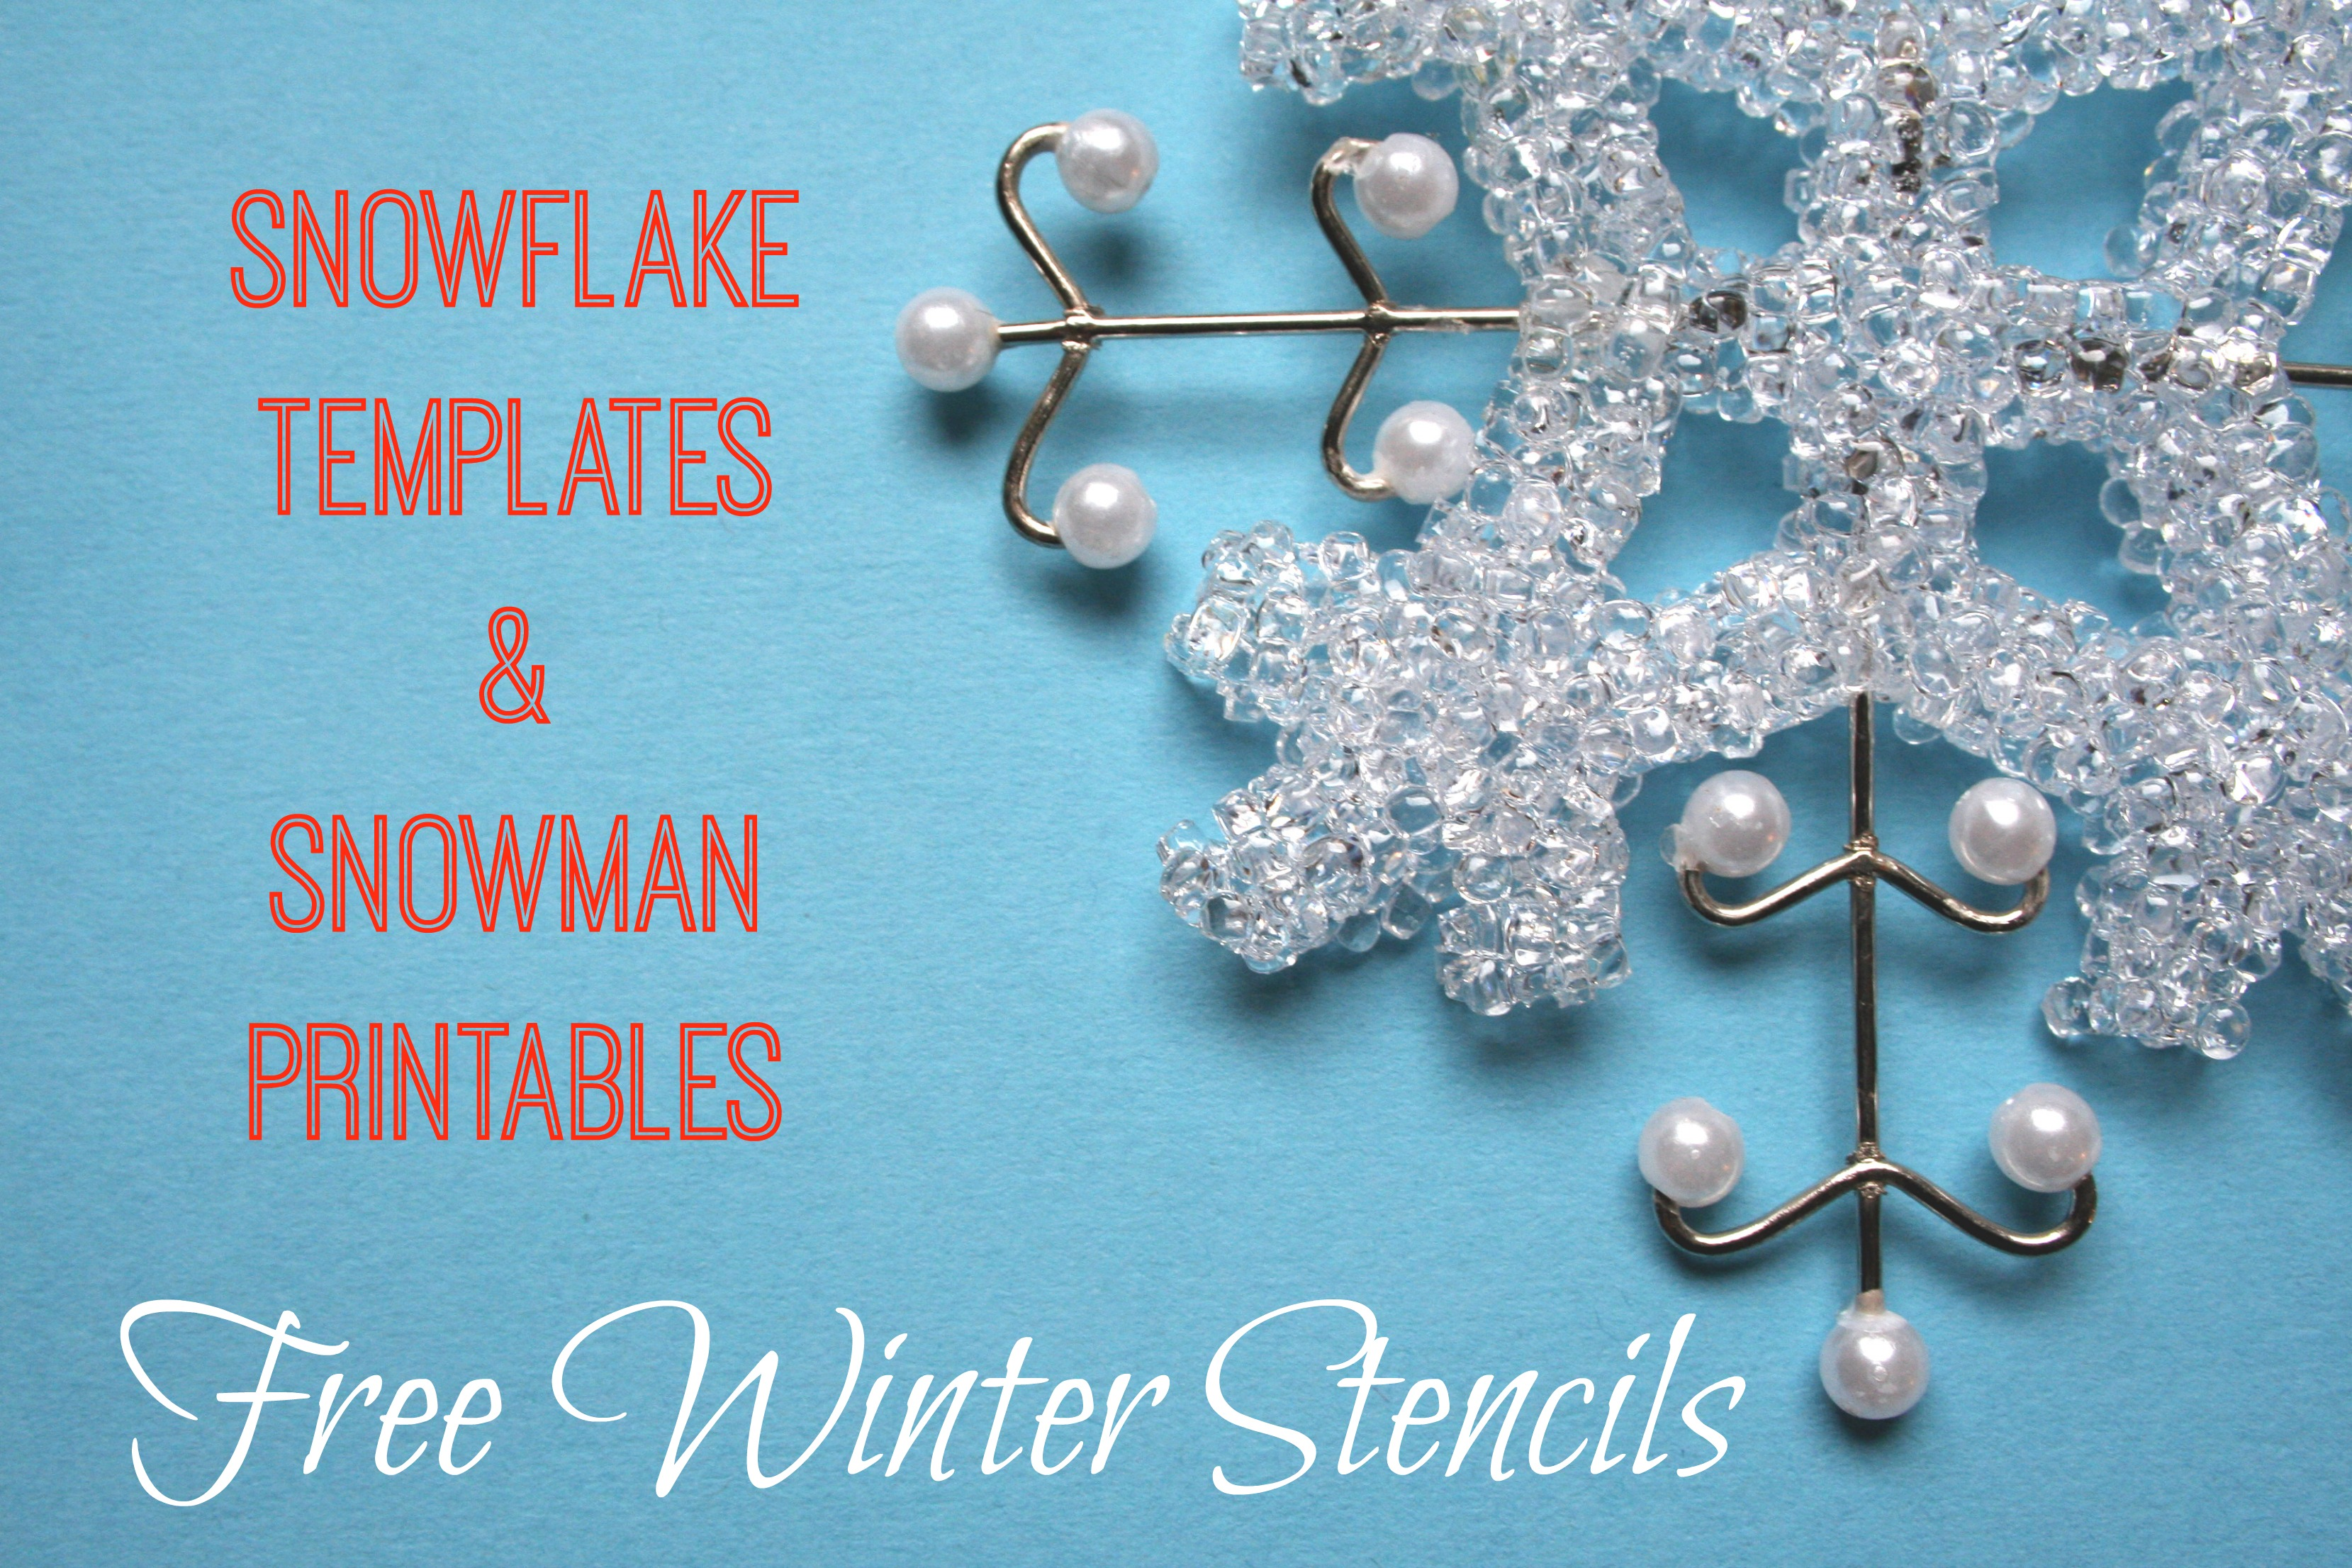 Free Winter Stencils Printable Snowflake Snowman Templates Patterns